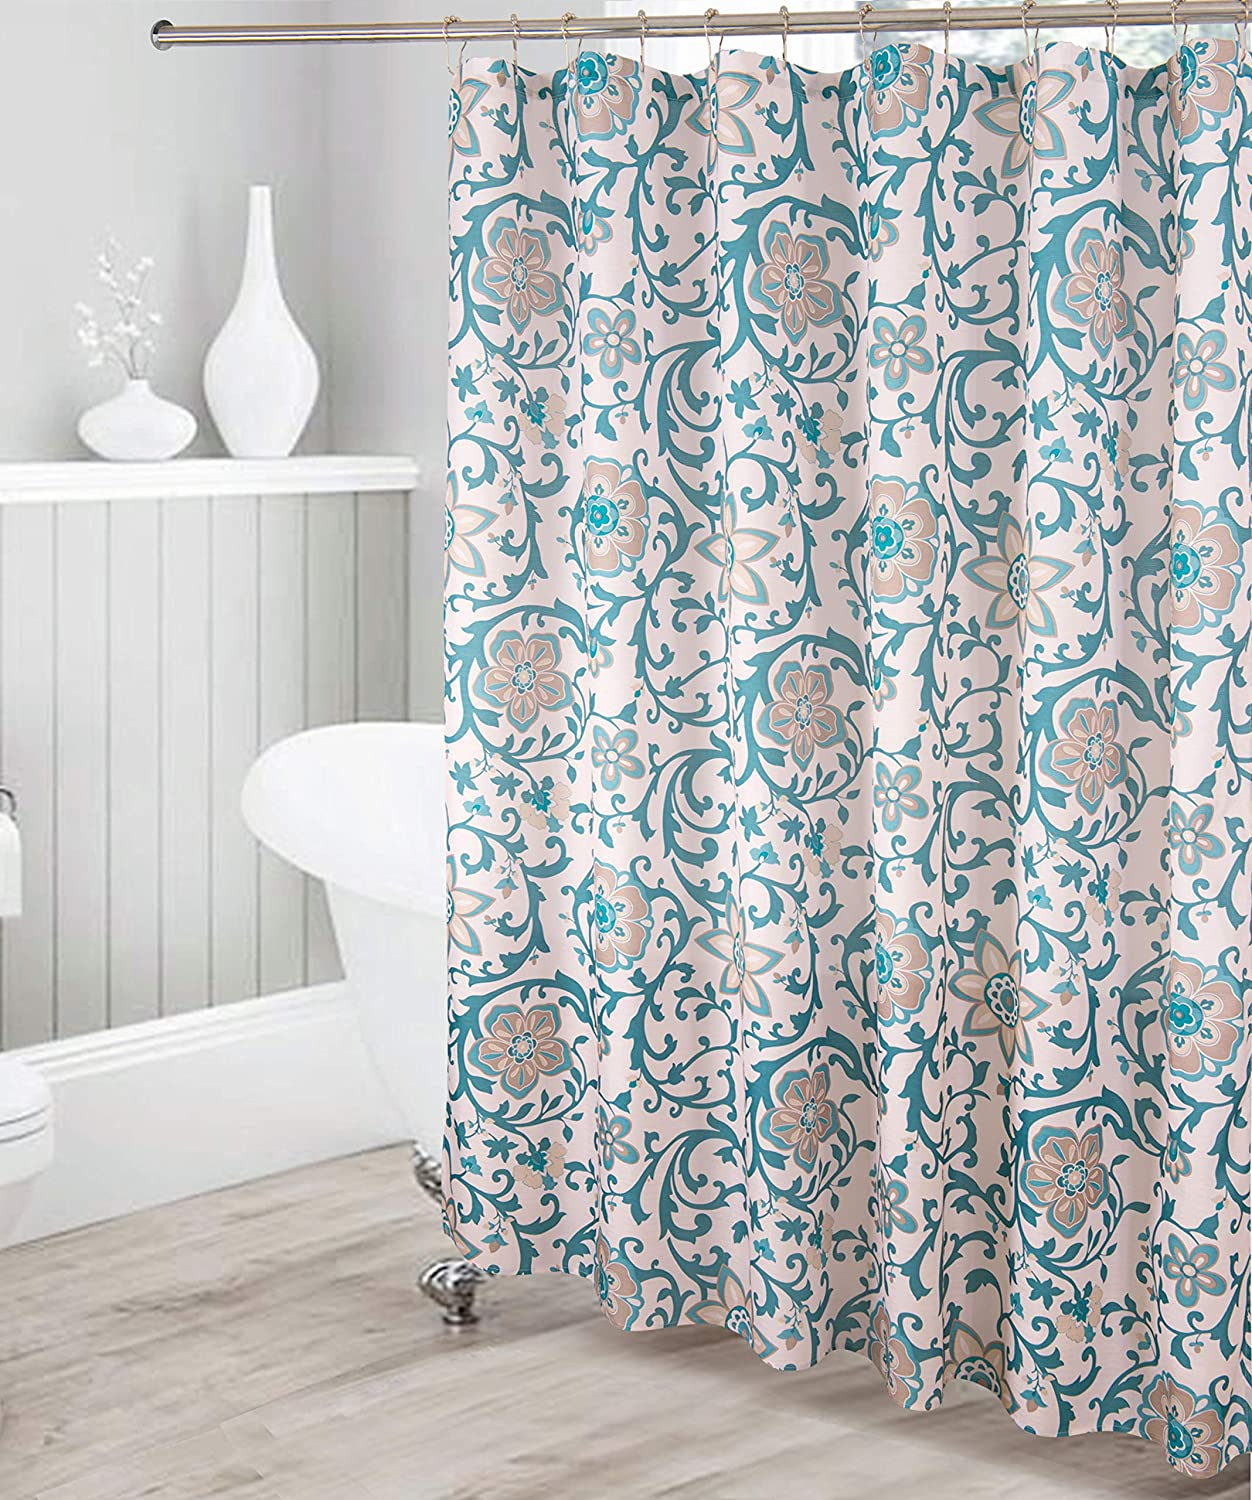 Decorative Bathroom Floral Pattern Waterproof Fabric Shower Curtain Turquoise Green Light Brown Off White with 12 Stainless Steel Roller Hooks for Modern Bathroom New